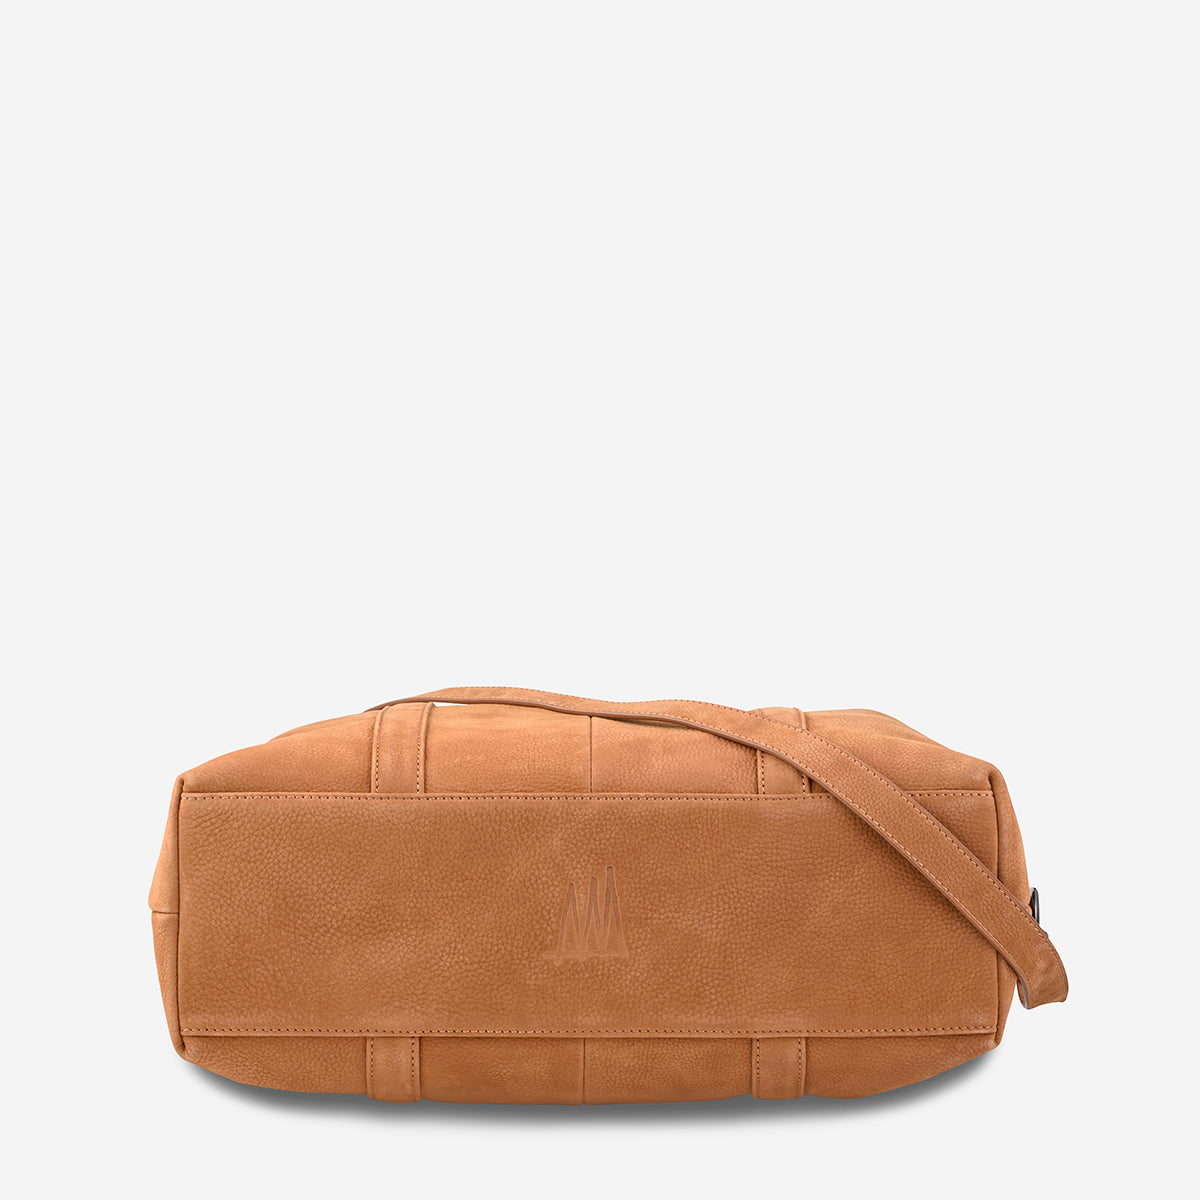 Status Anxiety Fall Of Hearts Nubuck Leather Bag - Tan